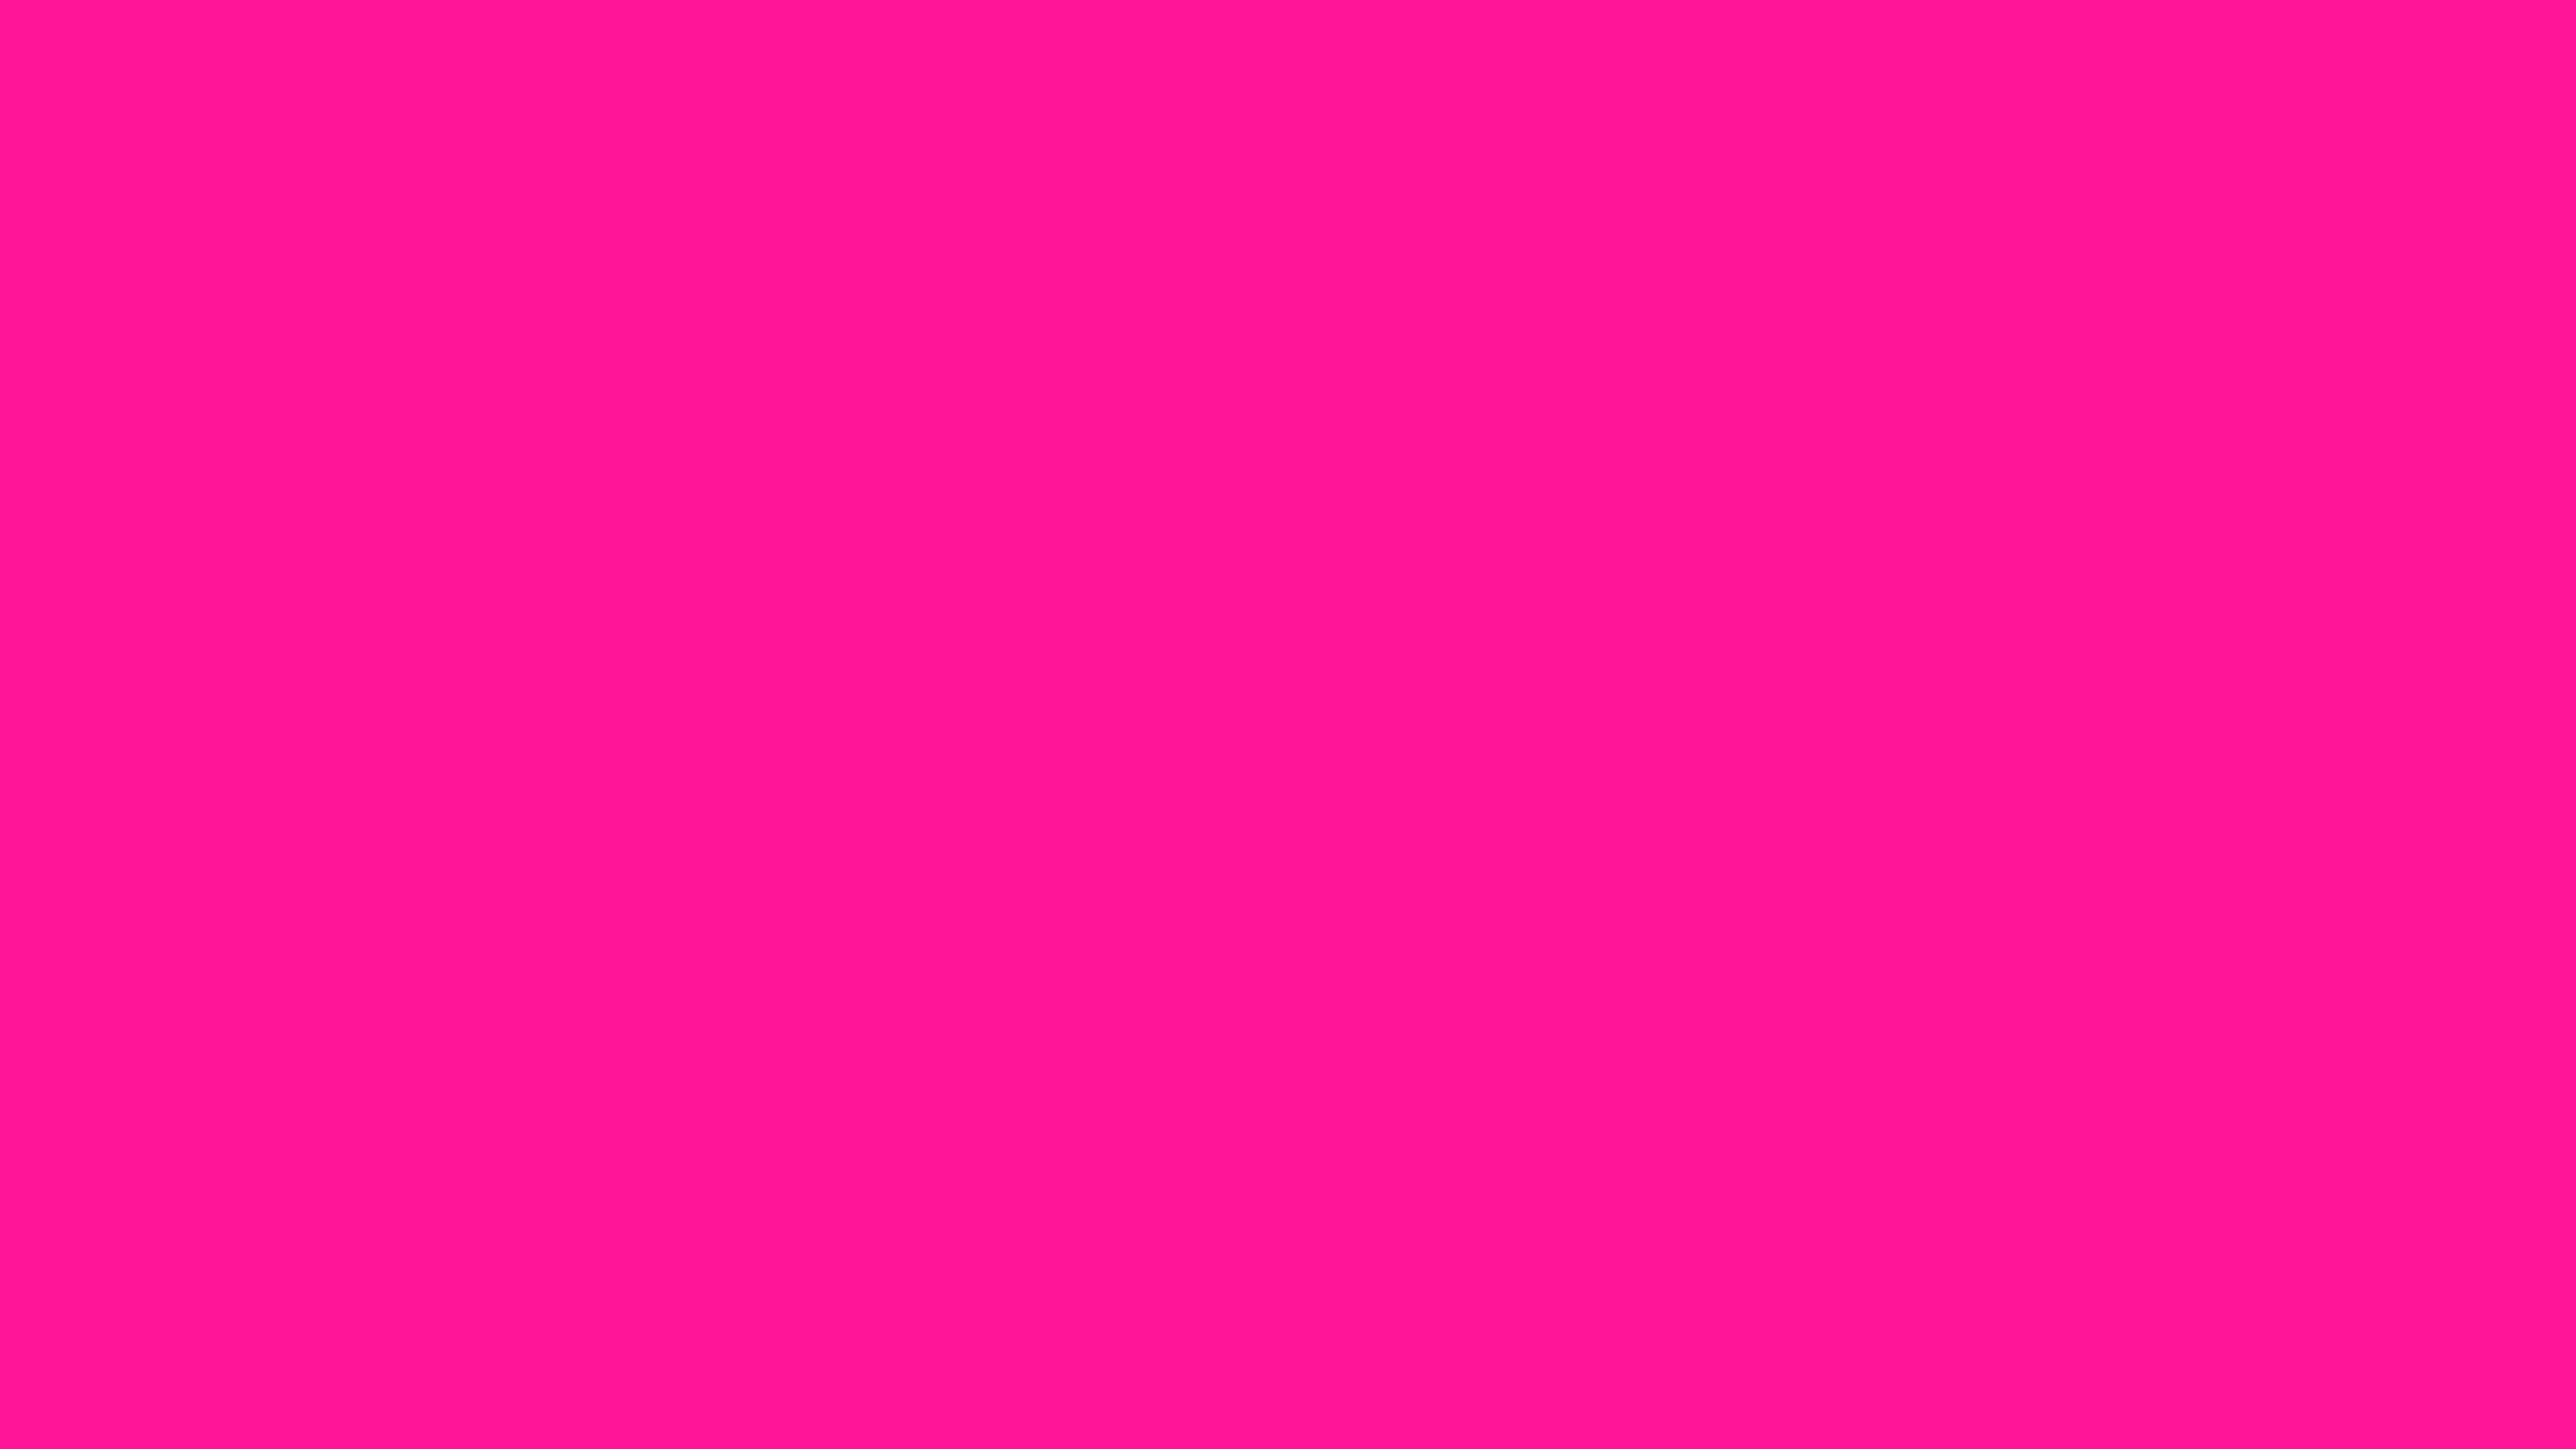 5120x2880 Fluorescent Pink Solid Color Background